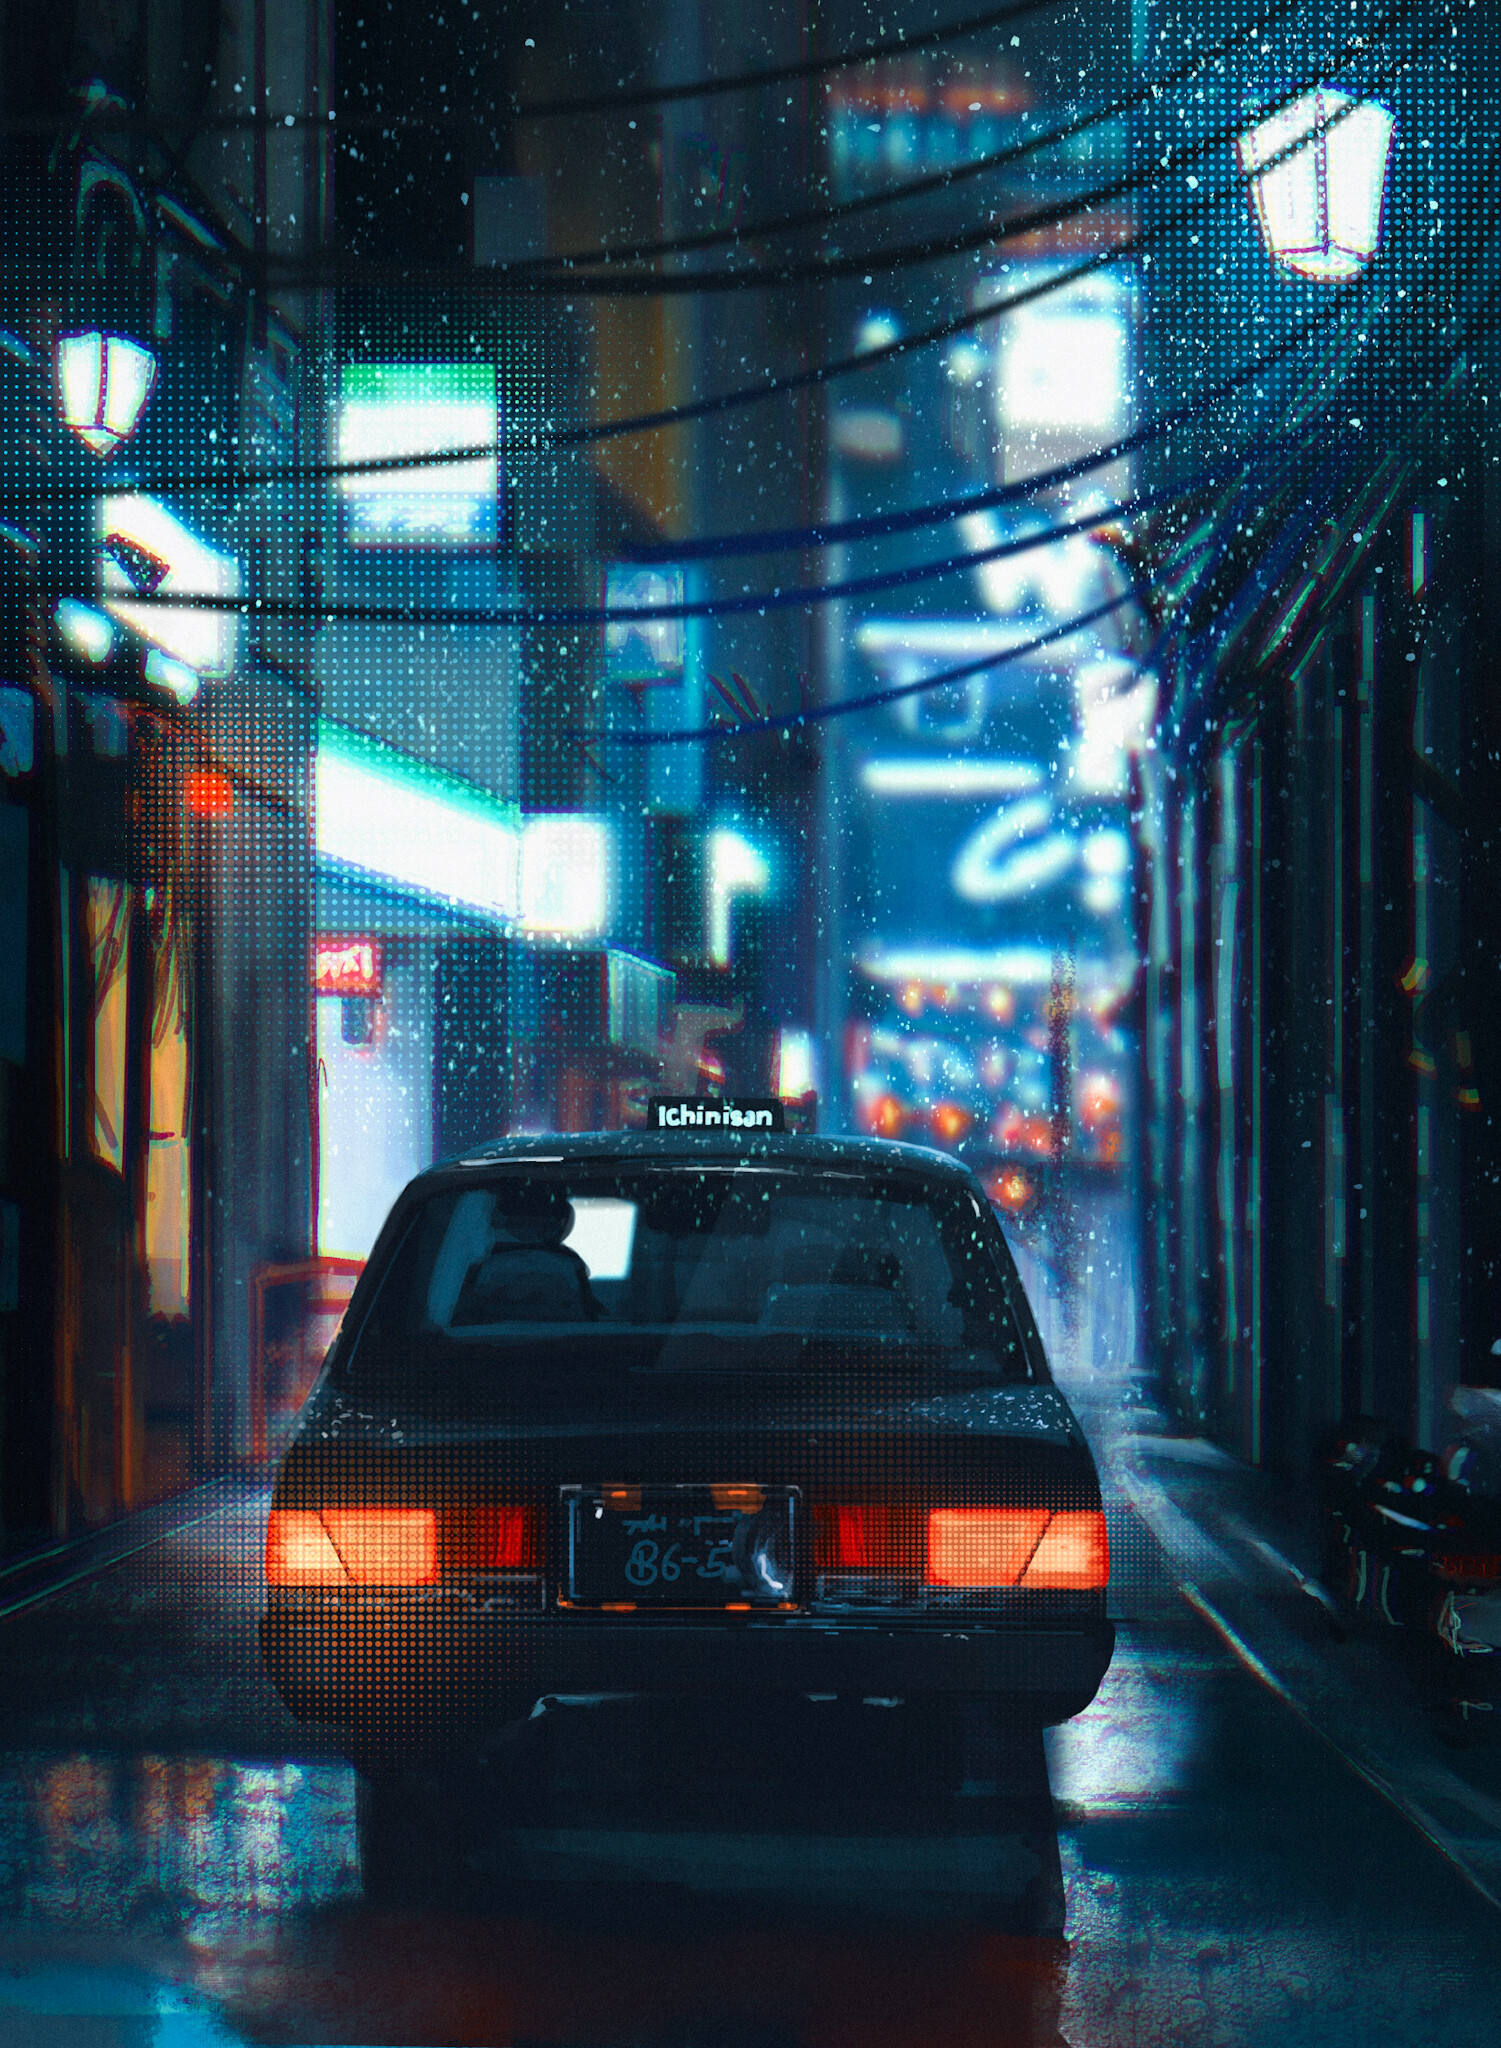 wallpaper iphone car in the street